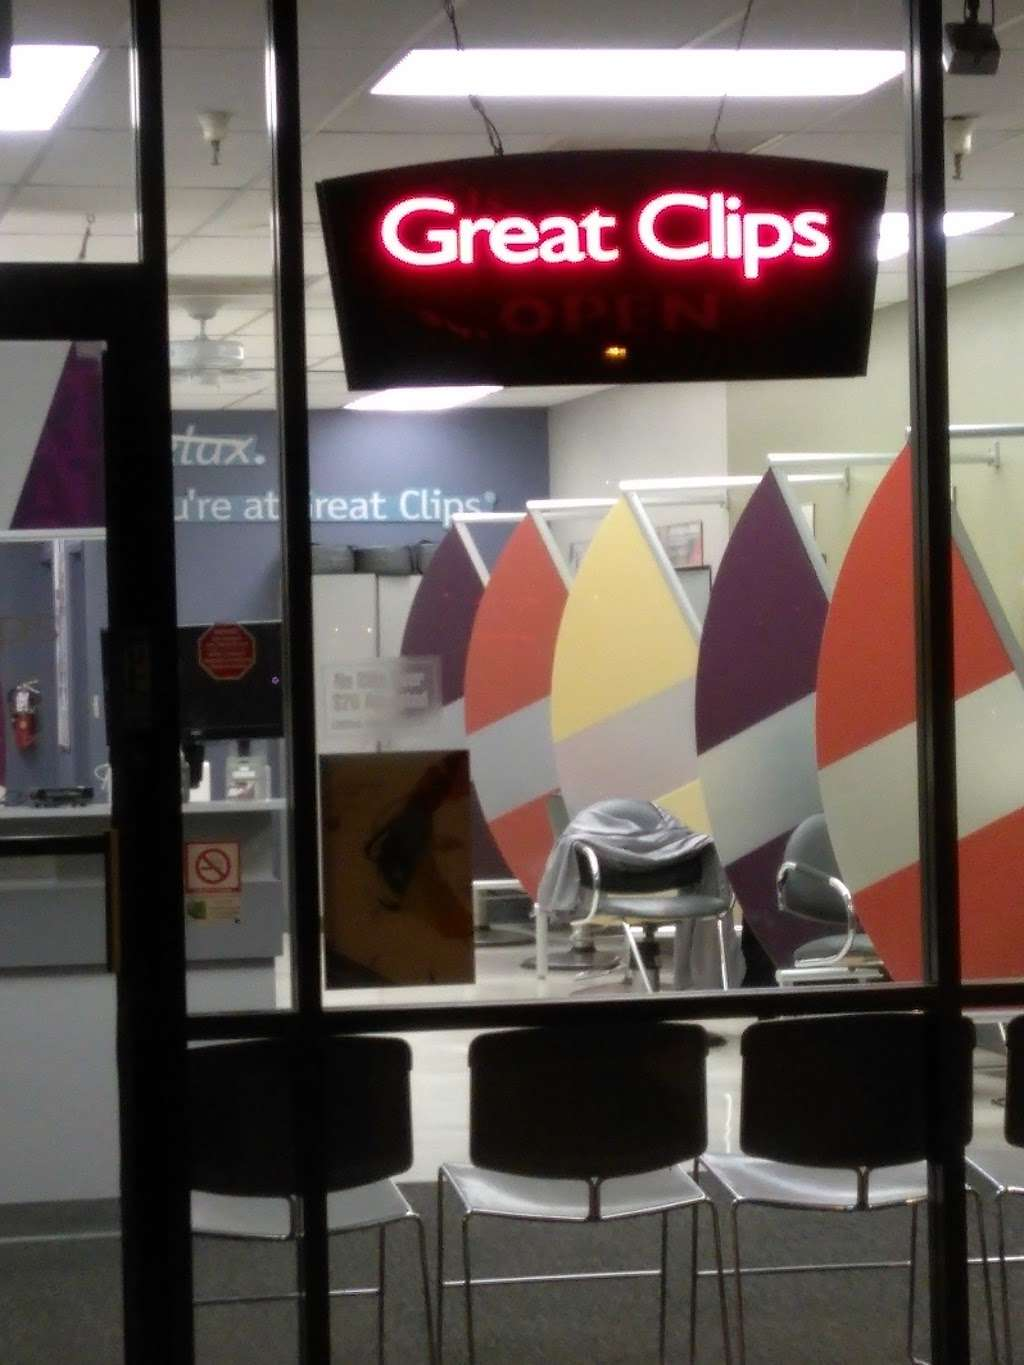 Great Clips - hair care  | Photo 3 of 6 | Address: 973 W Elliot Rd #1, Chandler, AZ 85225, USA | Phone: (480) 899-8640